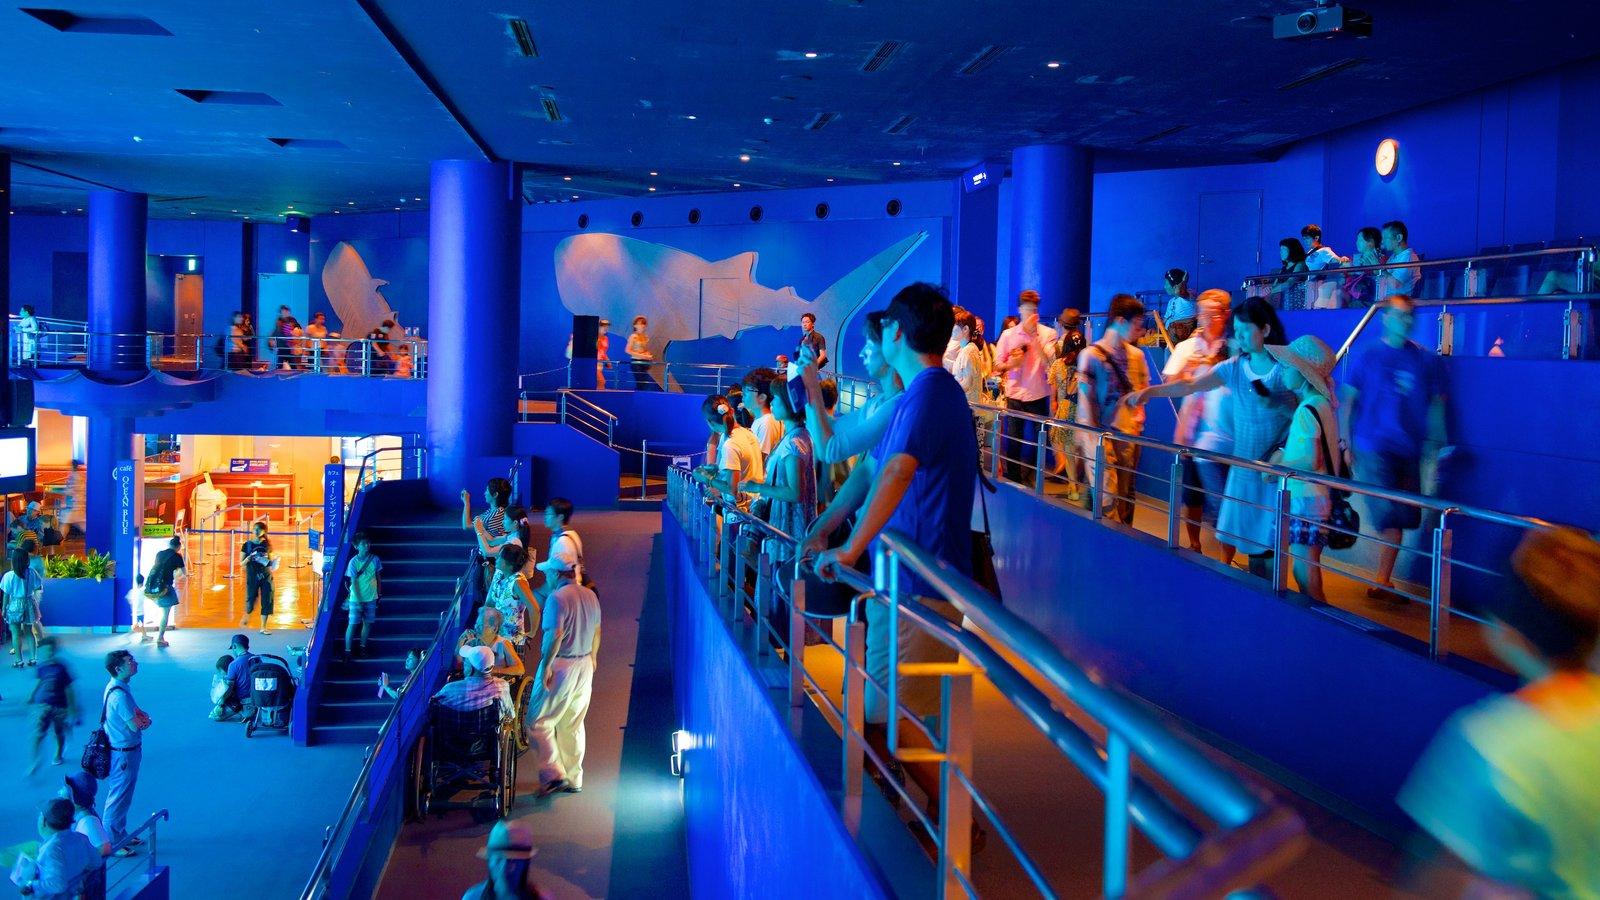 Okinawa Churaumi Aquarium showing interior views and marine life as well as a large group of people